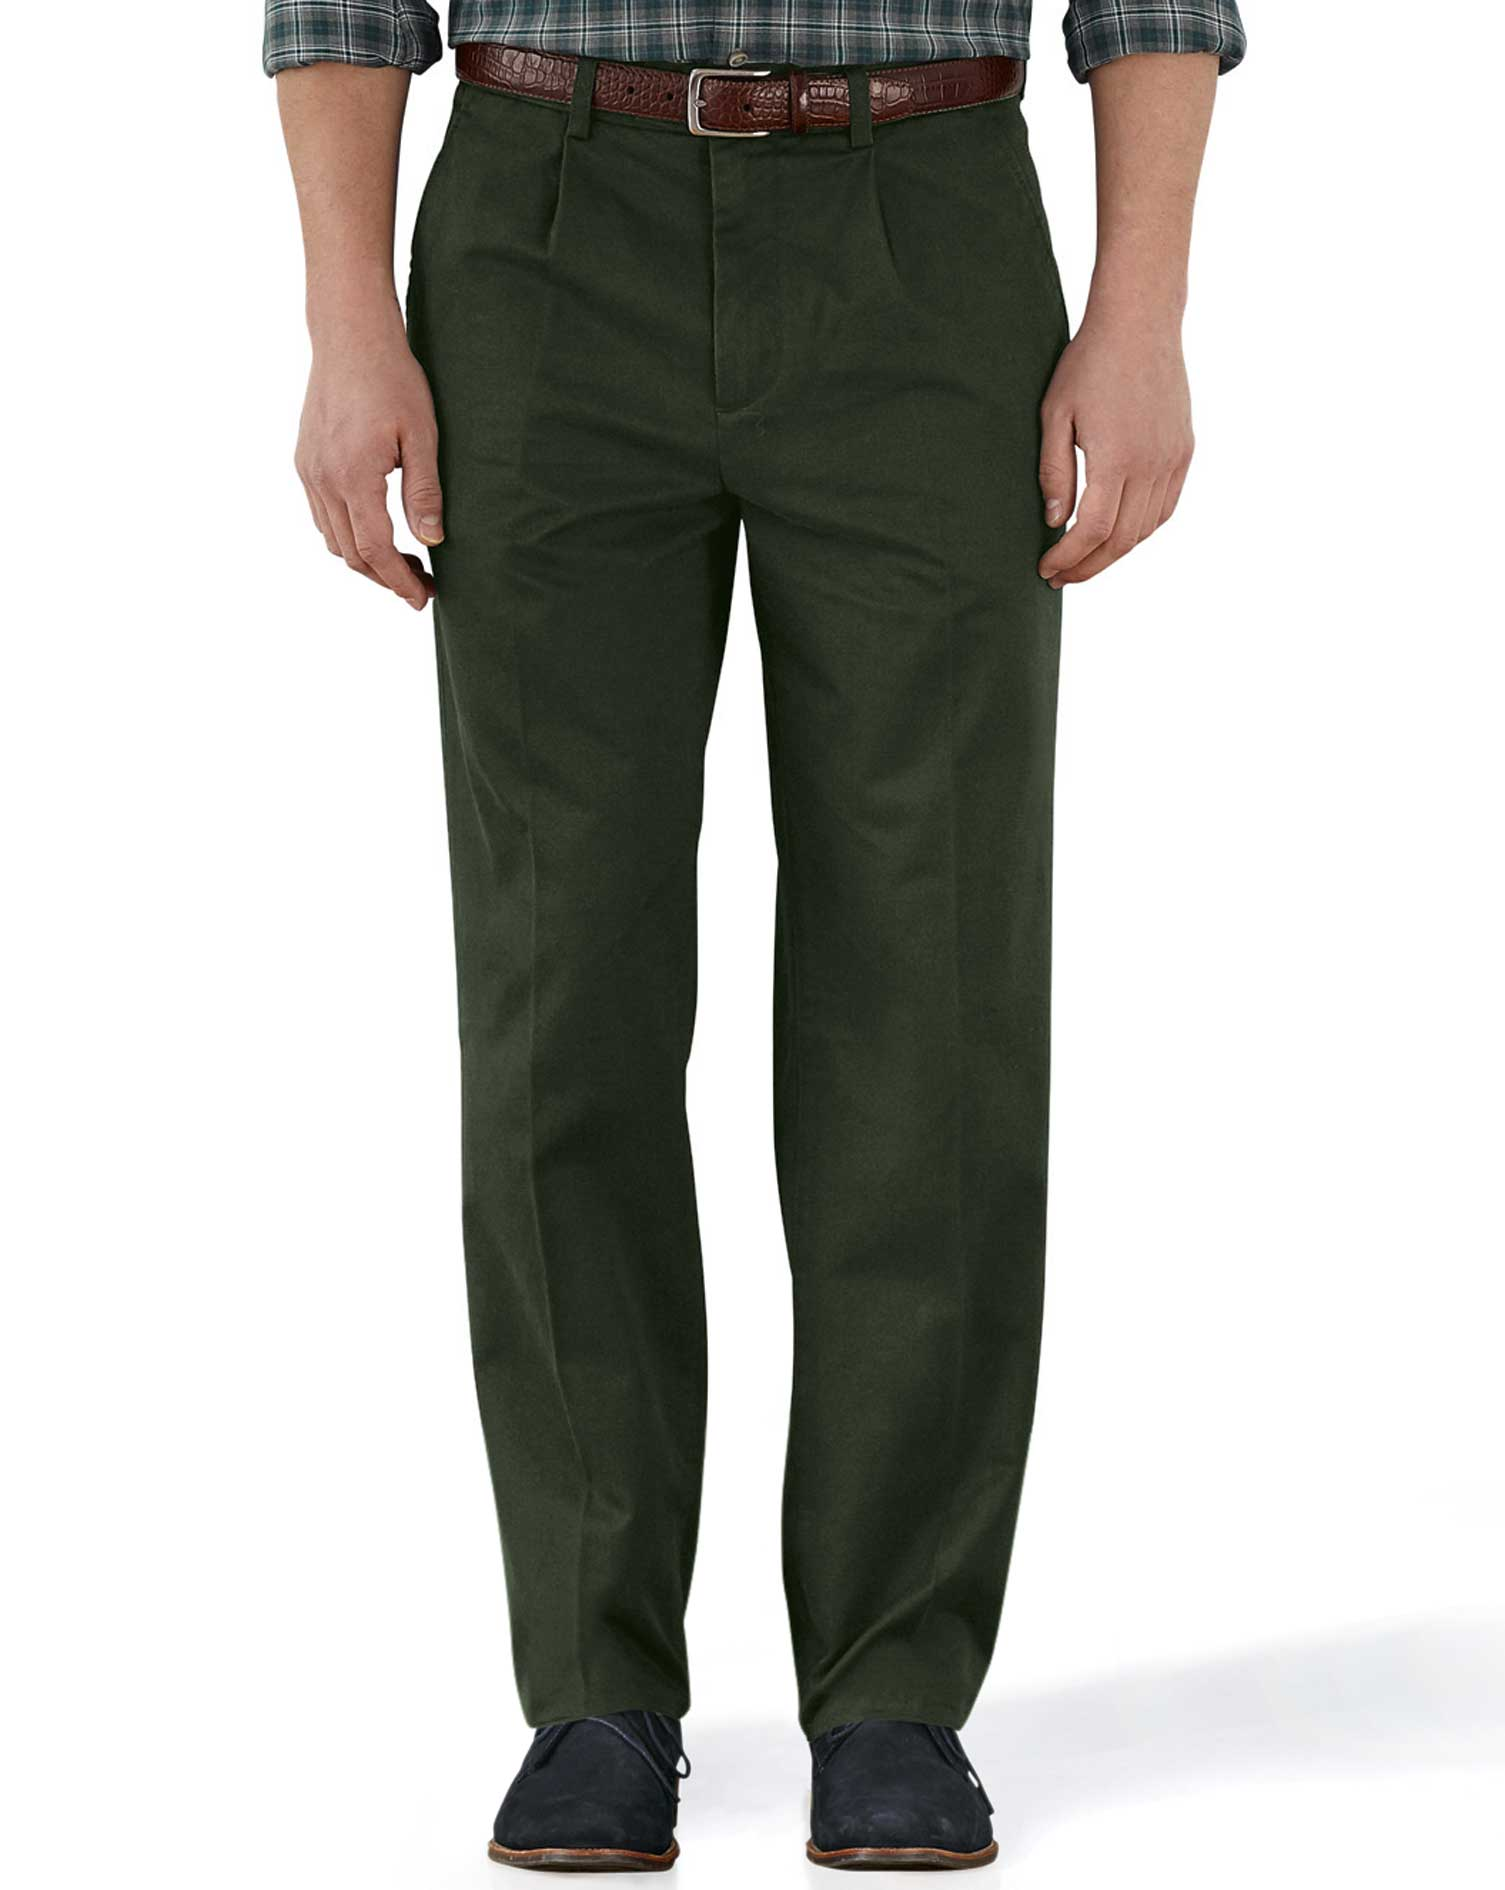 Dark Green Classic Fit Single Pleat Weekend Cotton Chino Trousers Size W36 L34 by Charles Tyrwhitt